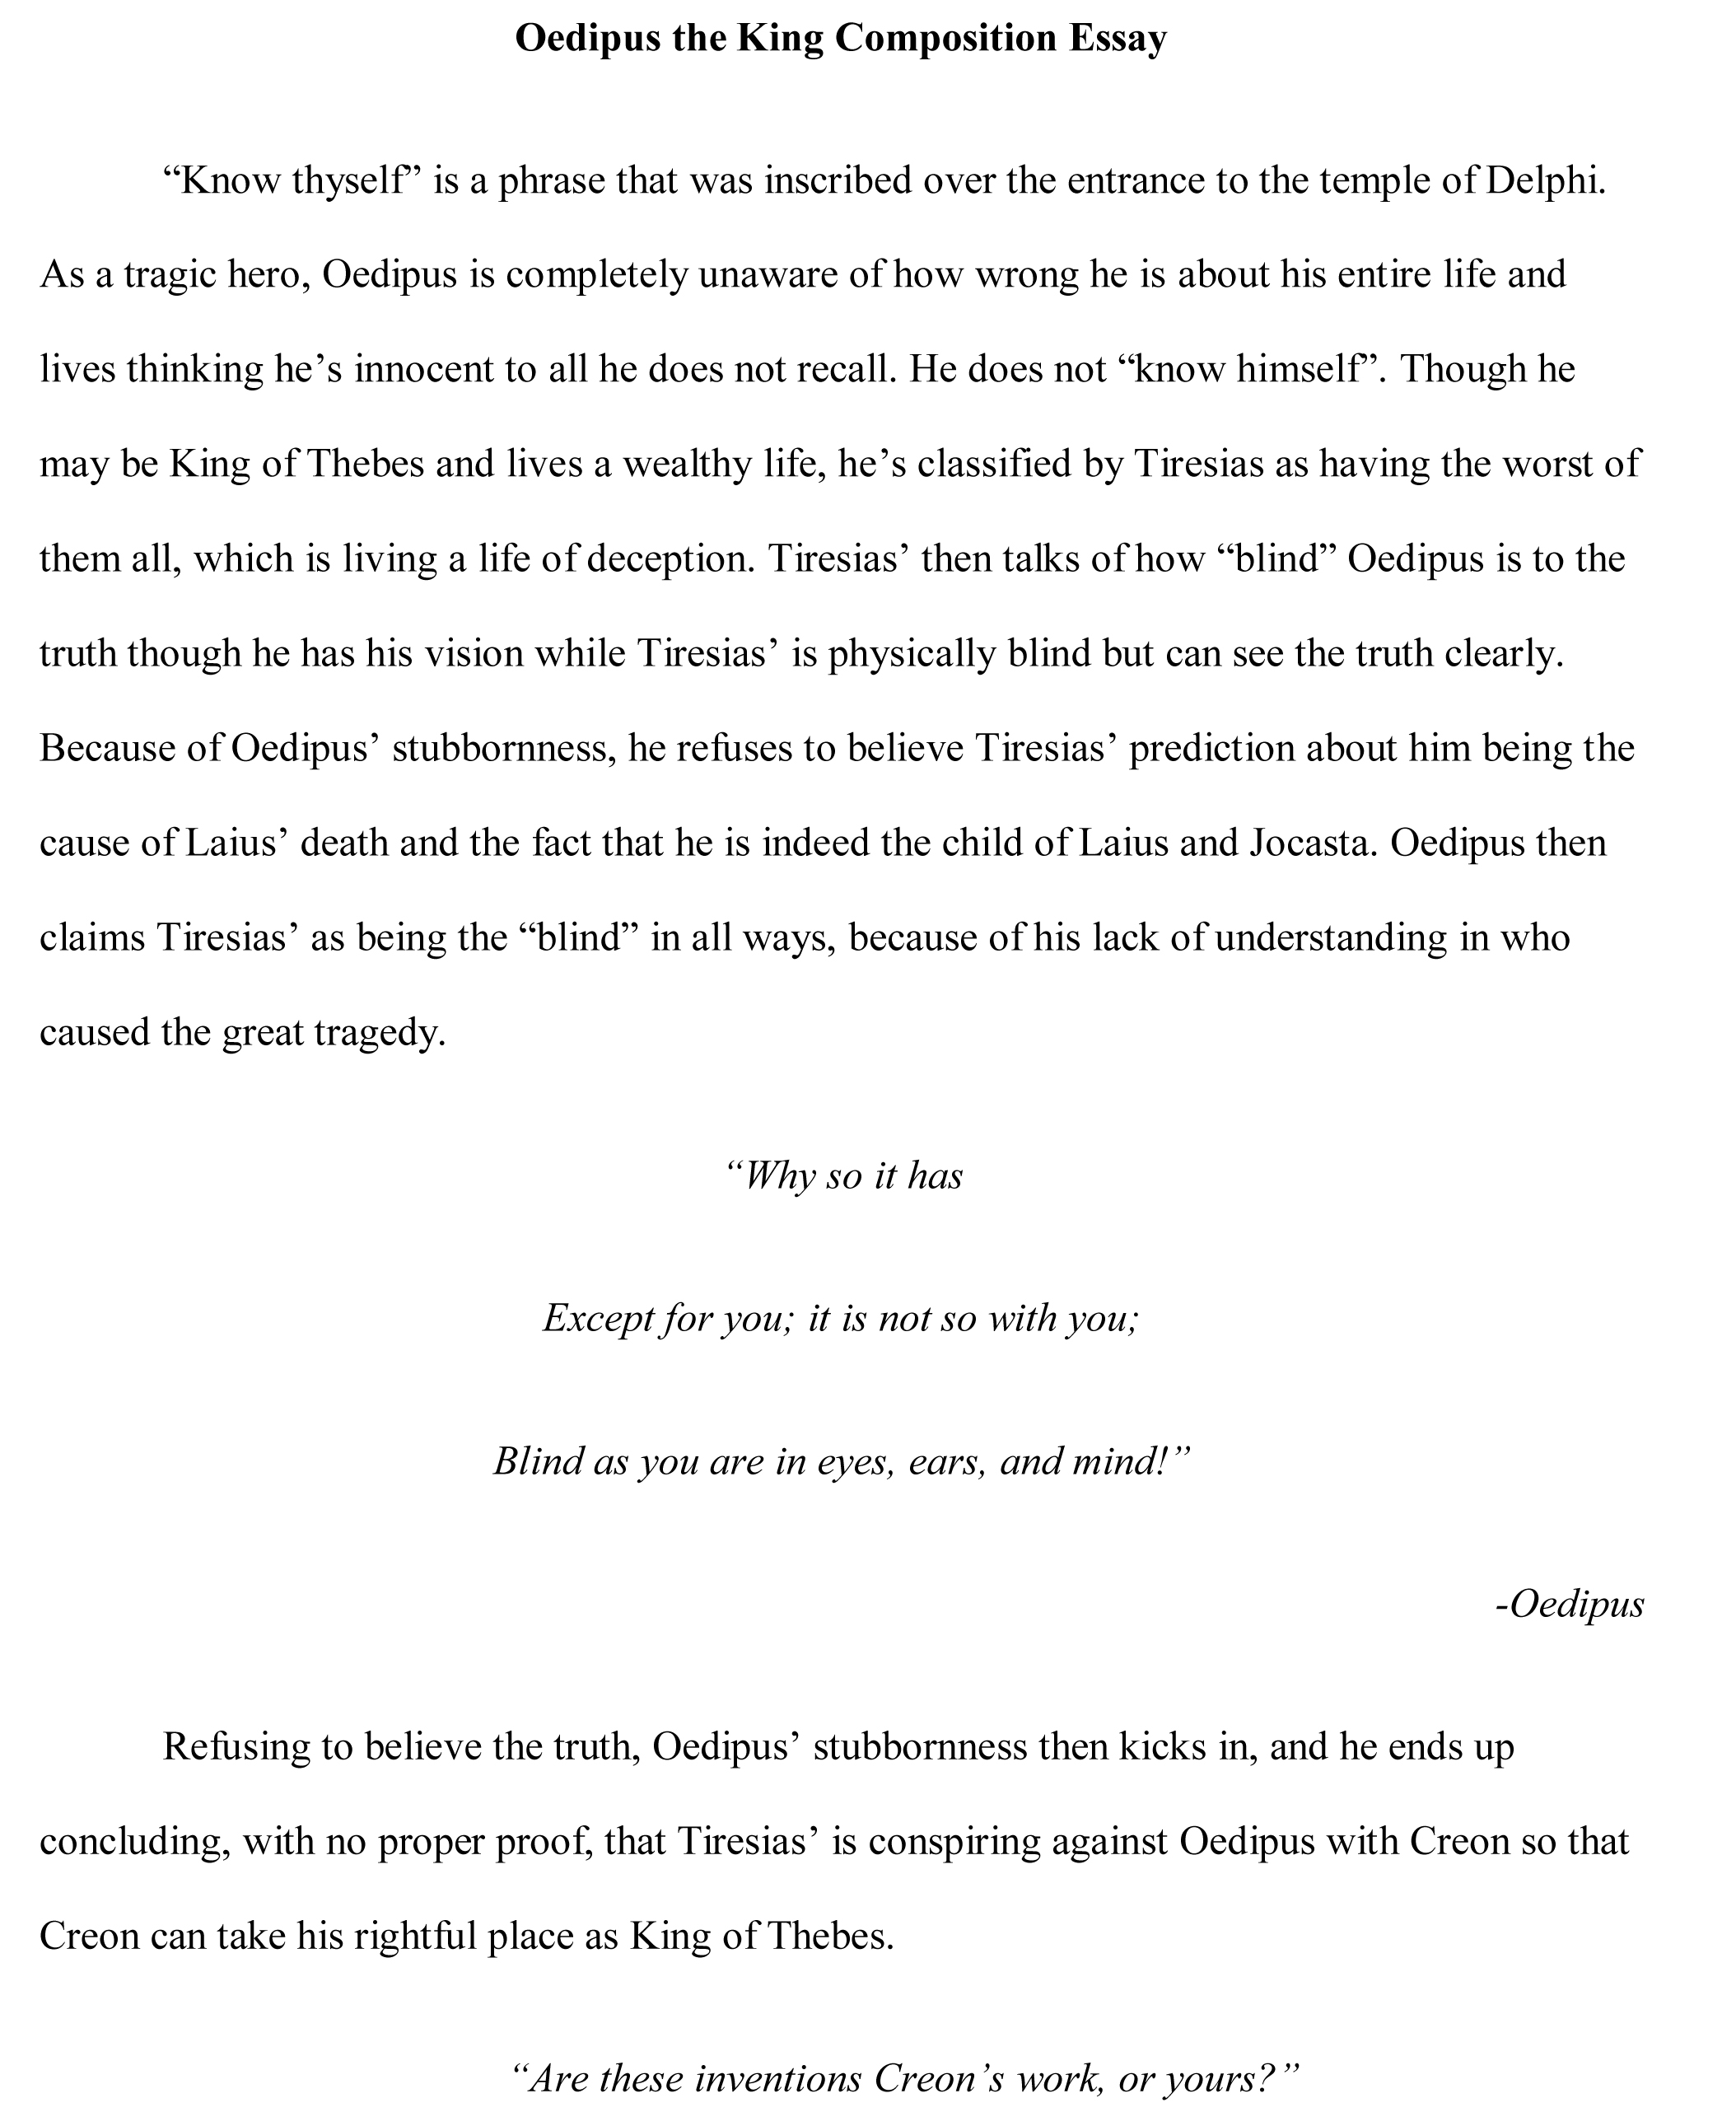 012 Interesting Essay Topics Oedipus Free Sample Amazing Descriptive To Write About For Grade 8 In Urdu Synthesis Full